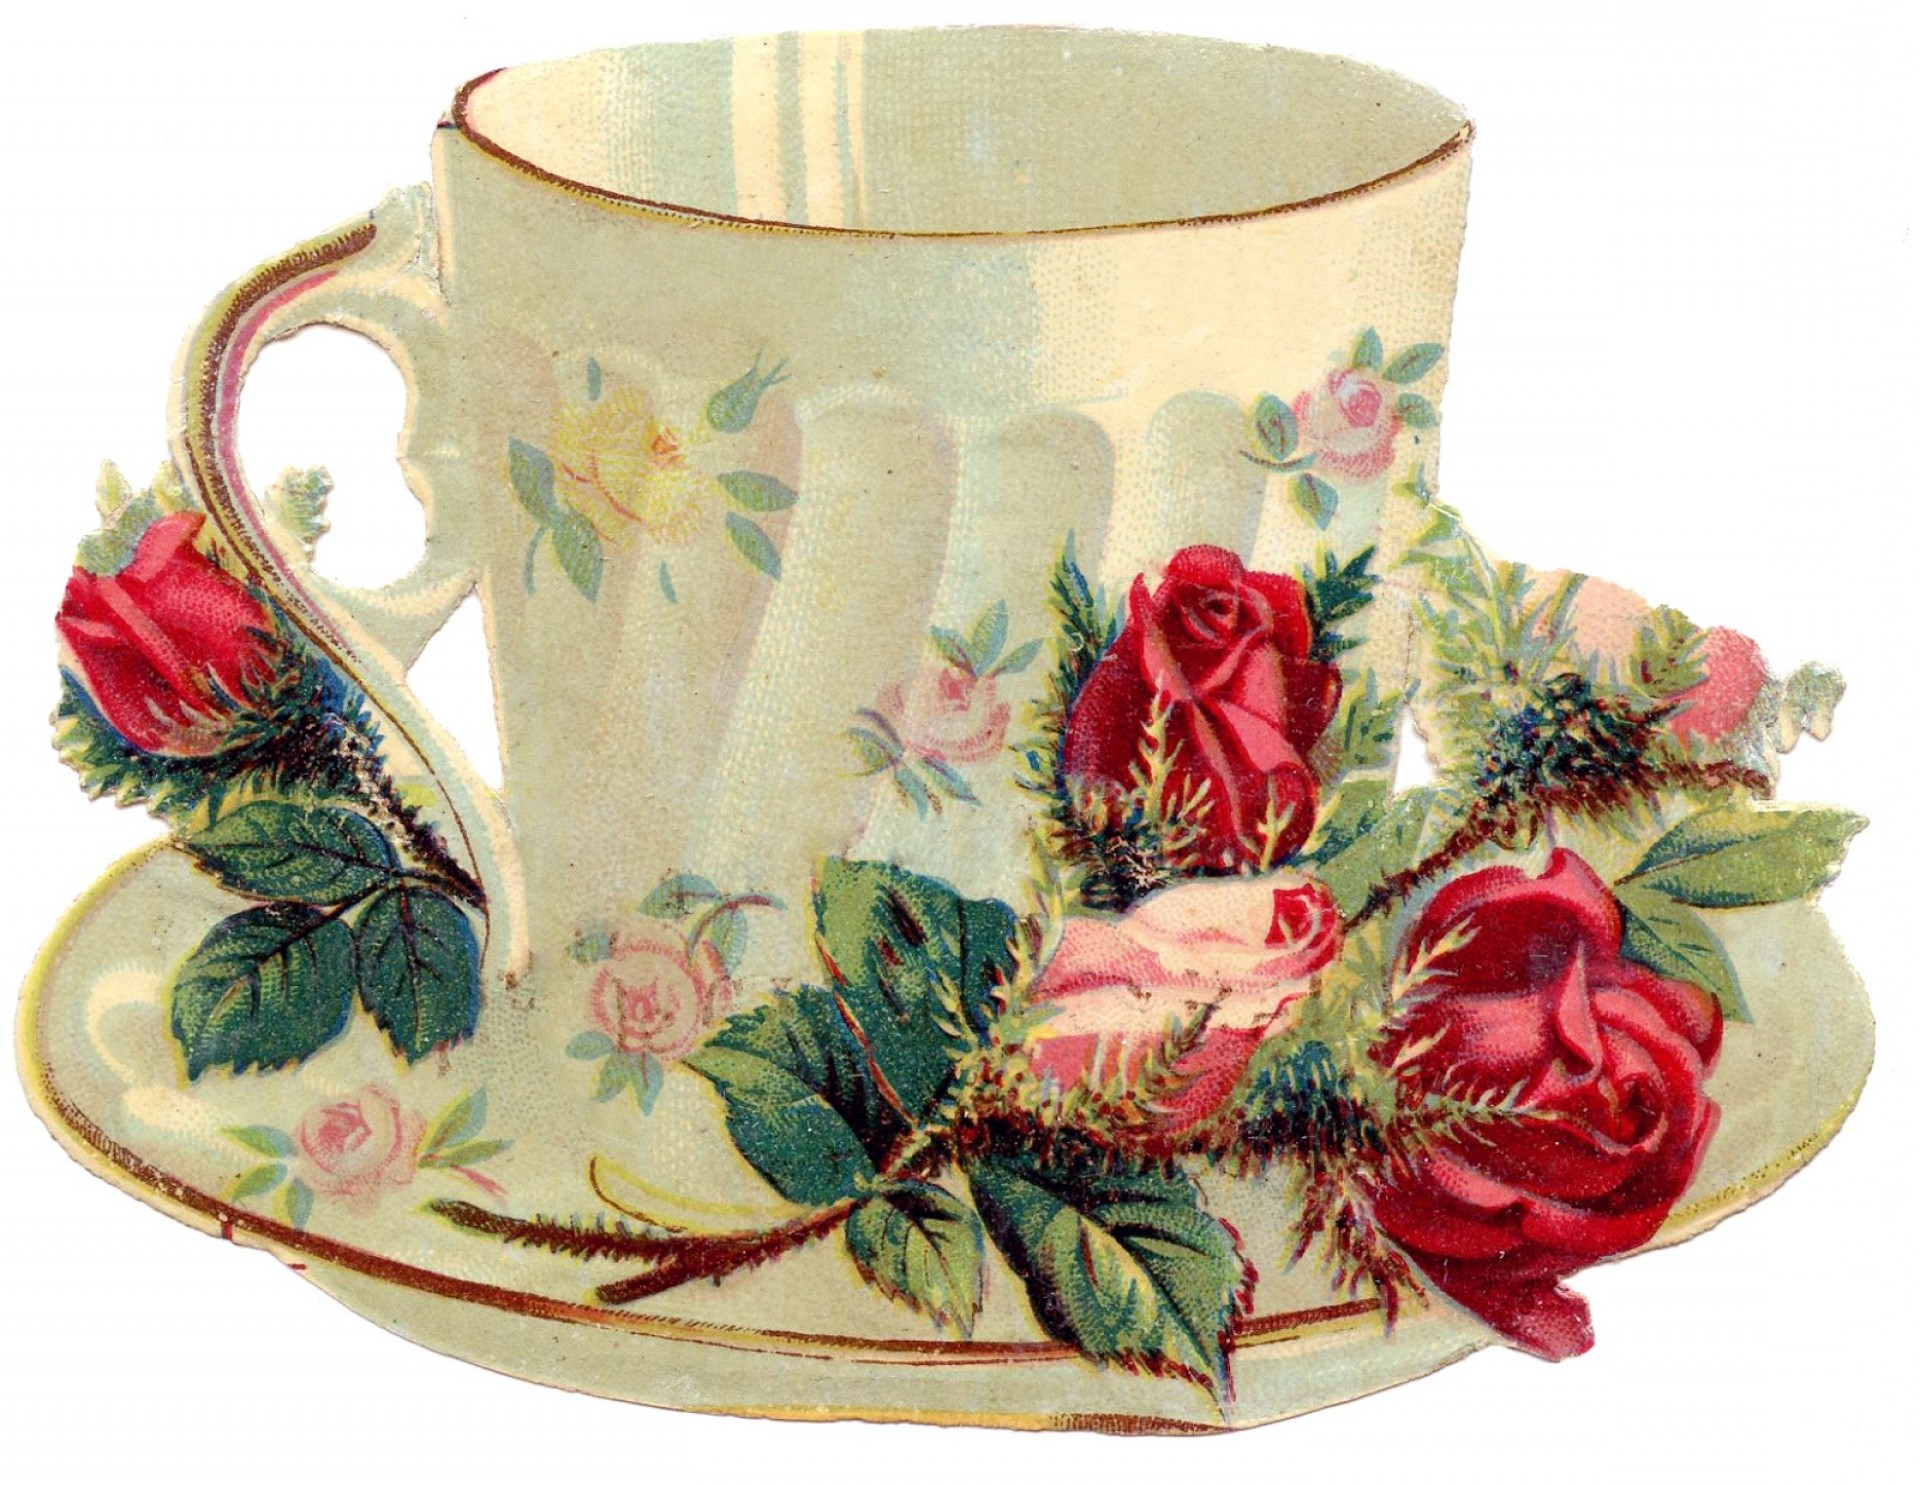 Vintage Tea Cup Vector: Free Vintage Images Teacup With Roses French